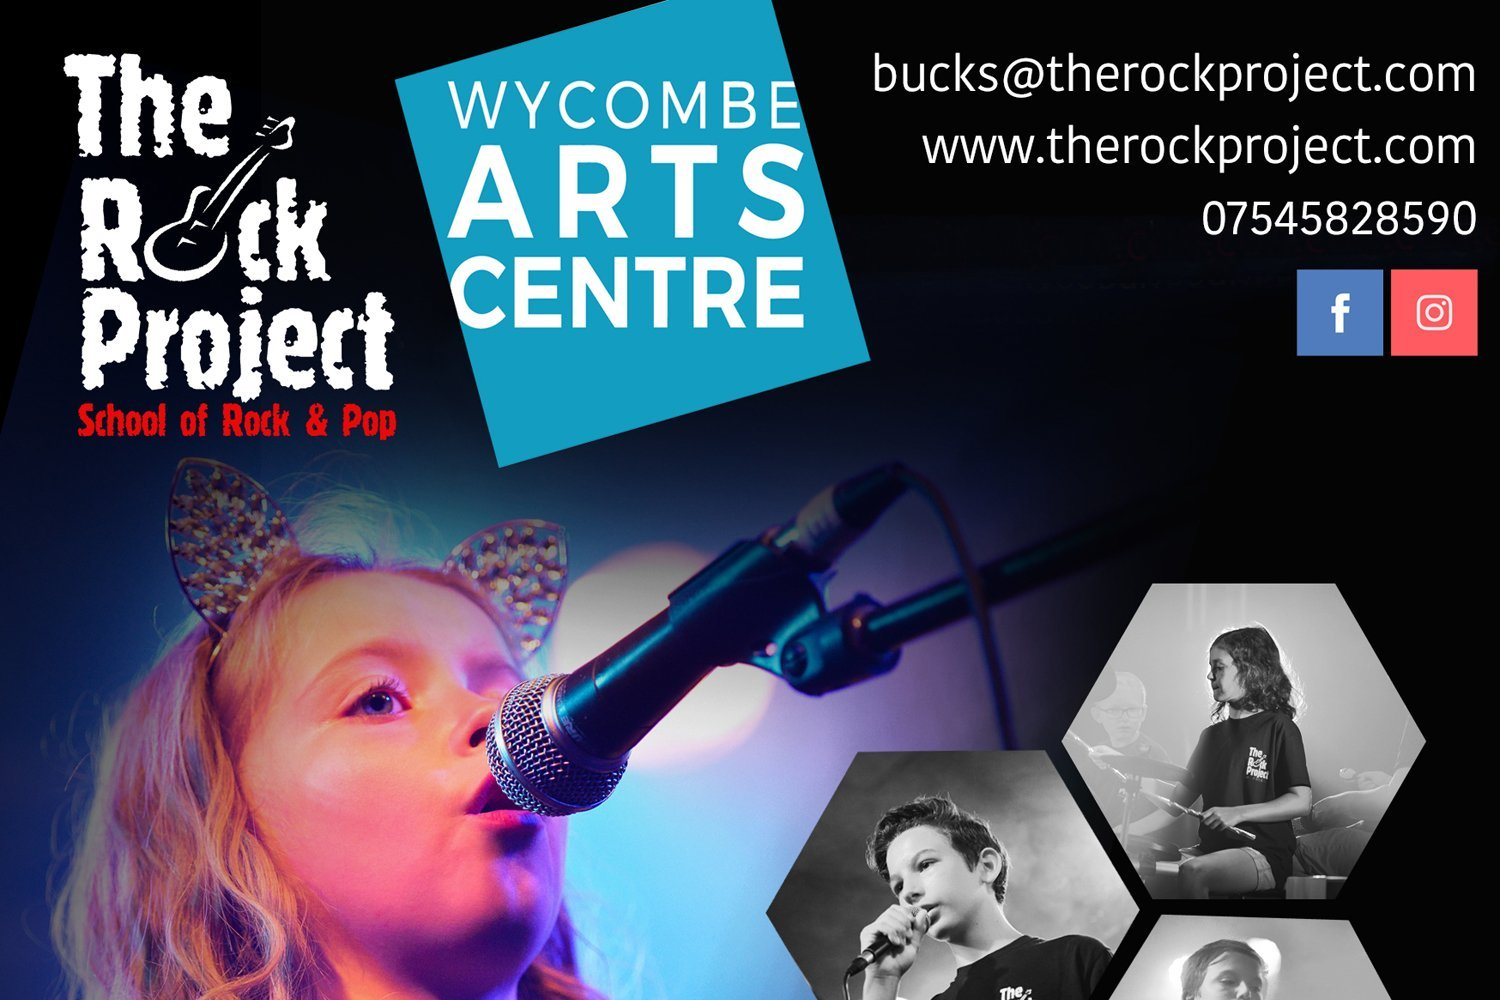 The Rock Project at Wycombe Arts Centre